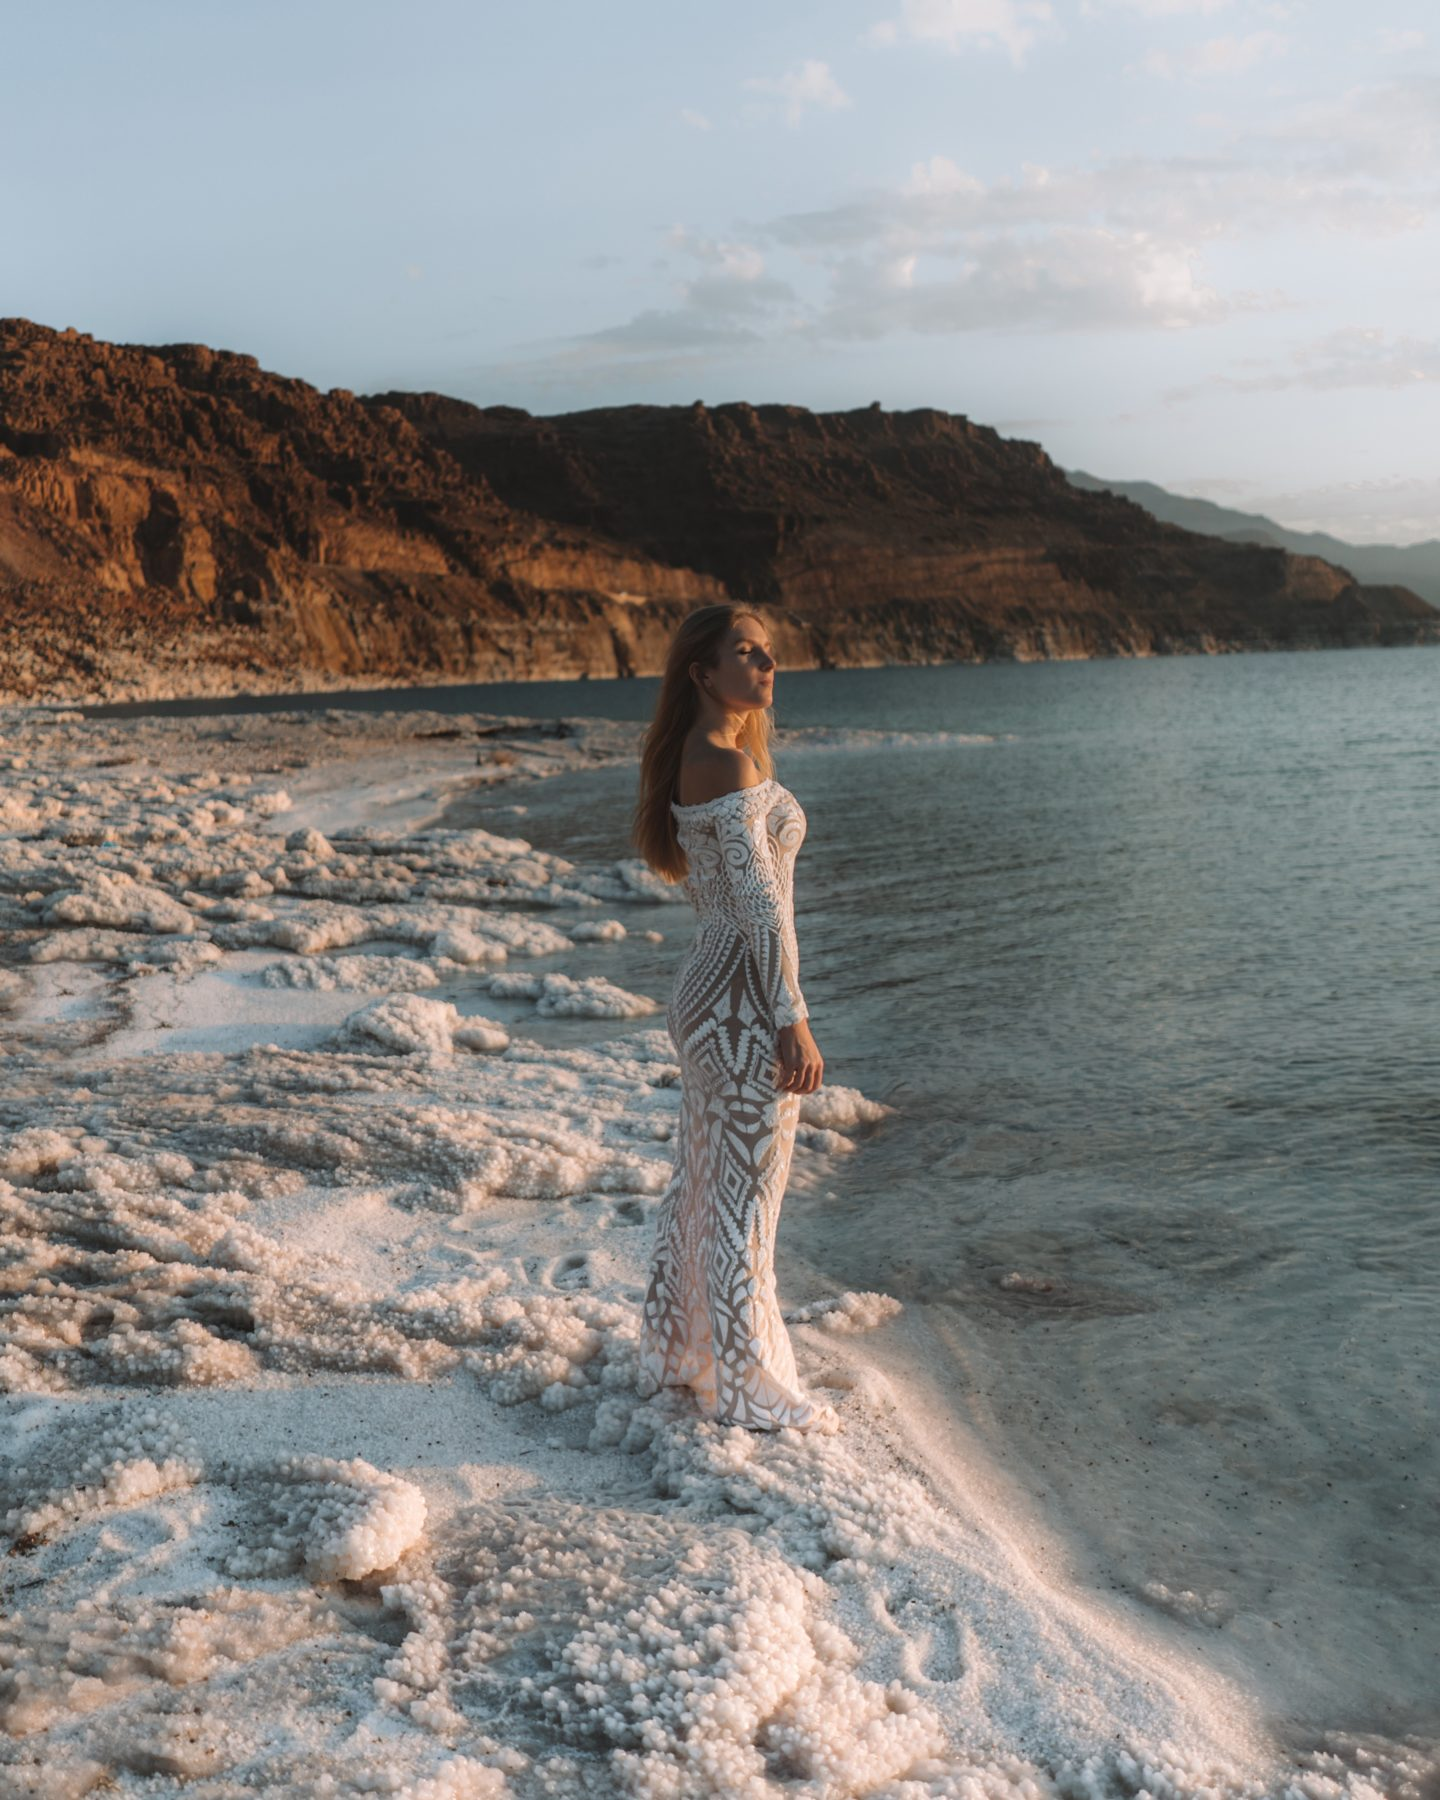 Equipar Activar salado  The dead sea of Jordan, a beautiful salted lake to visit